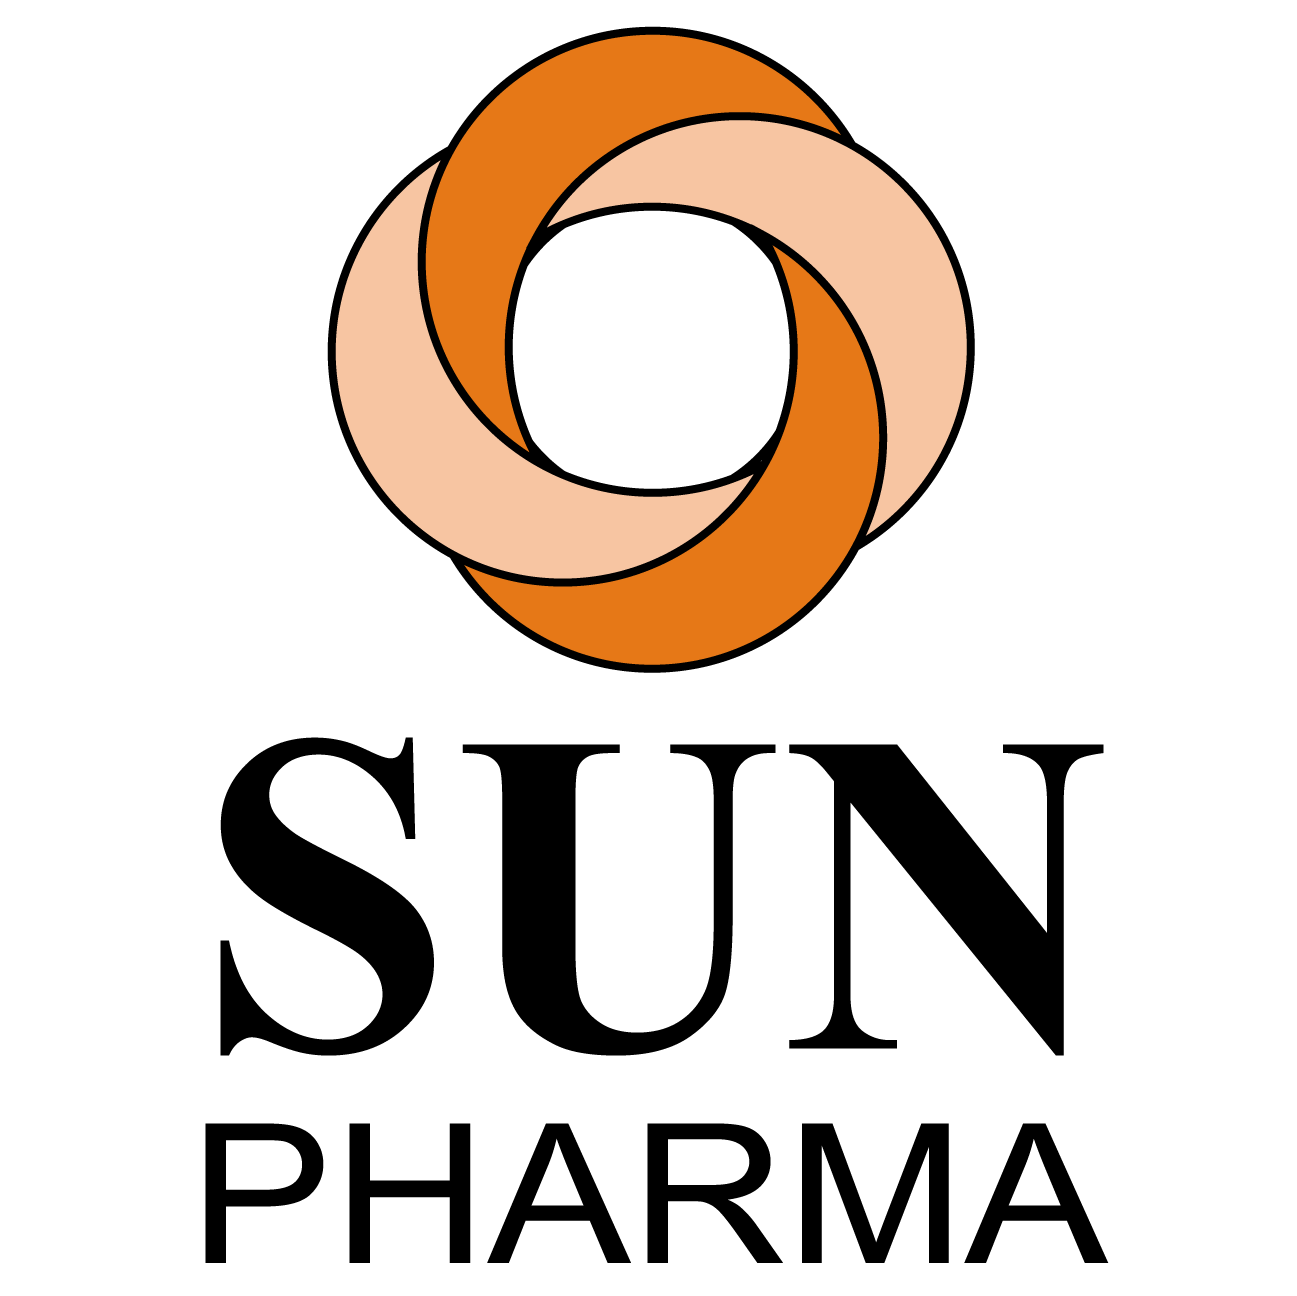 SUN PHARMA BANGLADESH LTD.